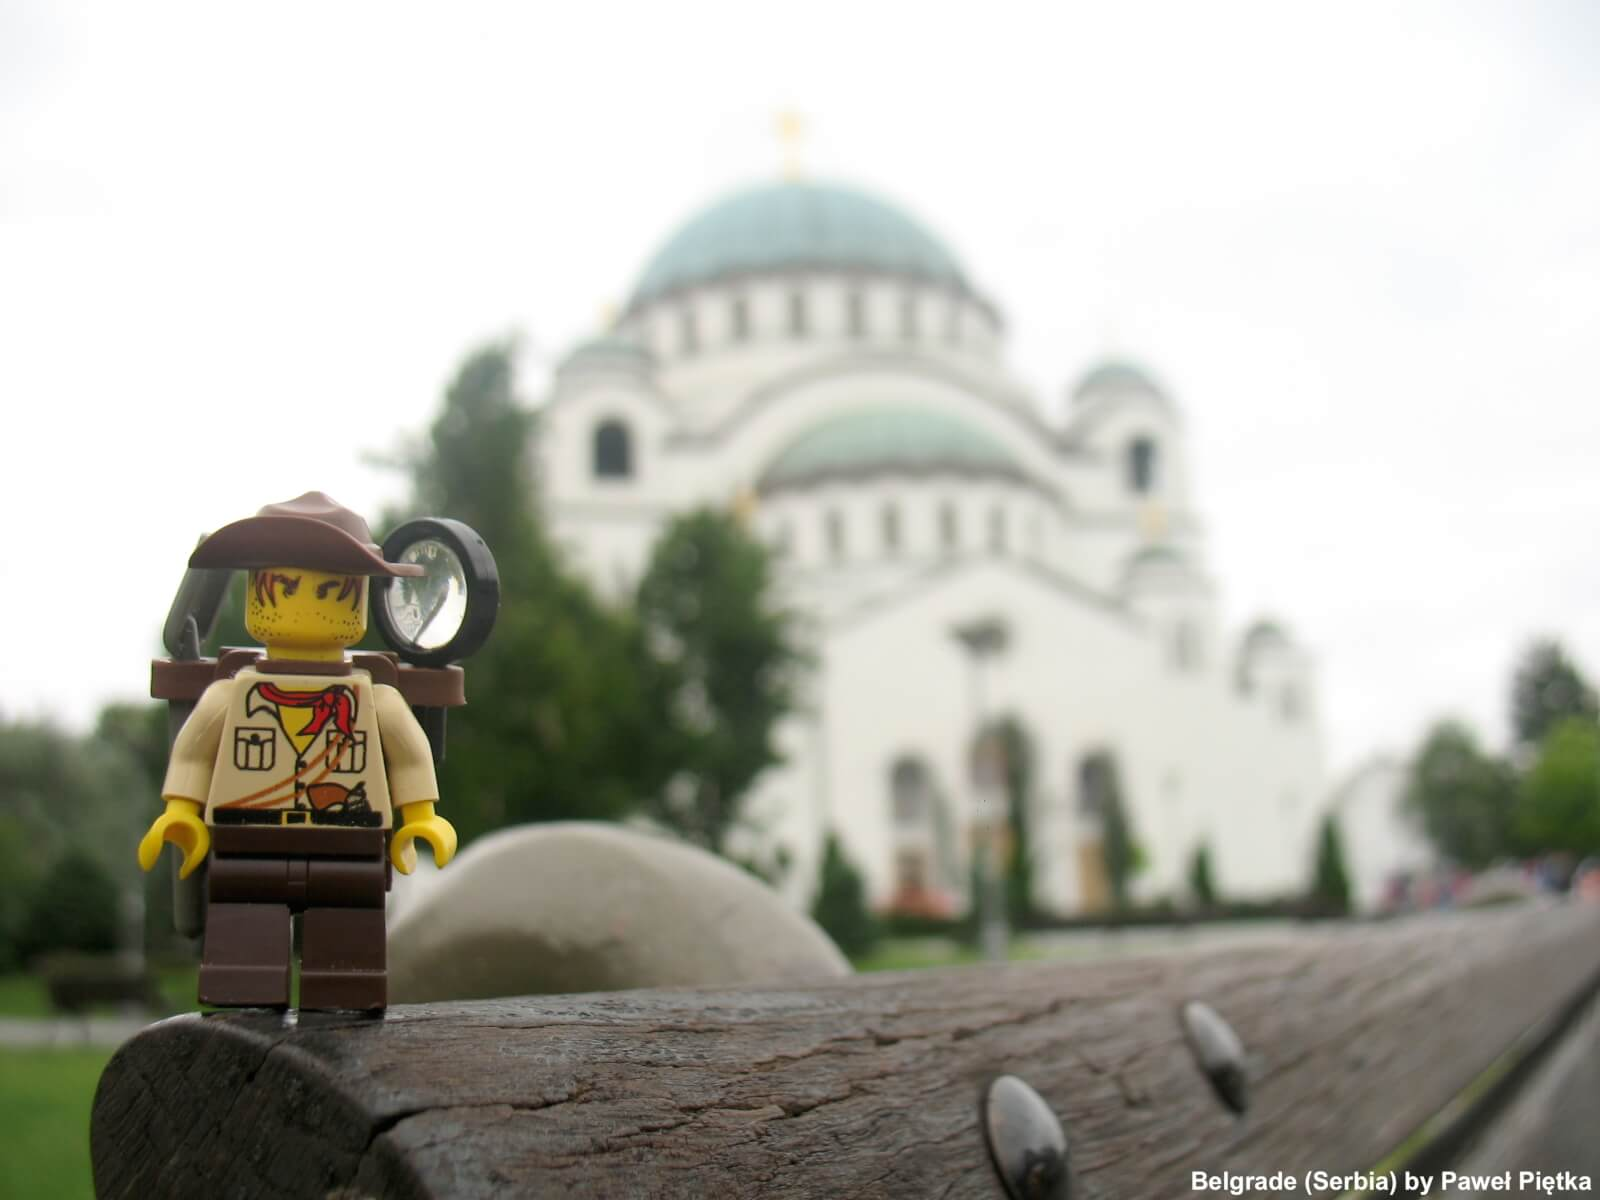 Belgrade (Serbia) - Church of Saint Sava